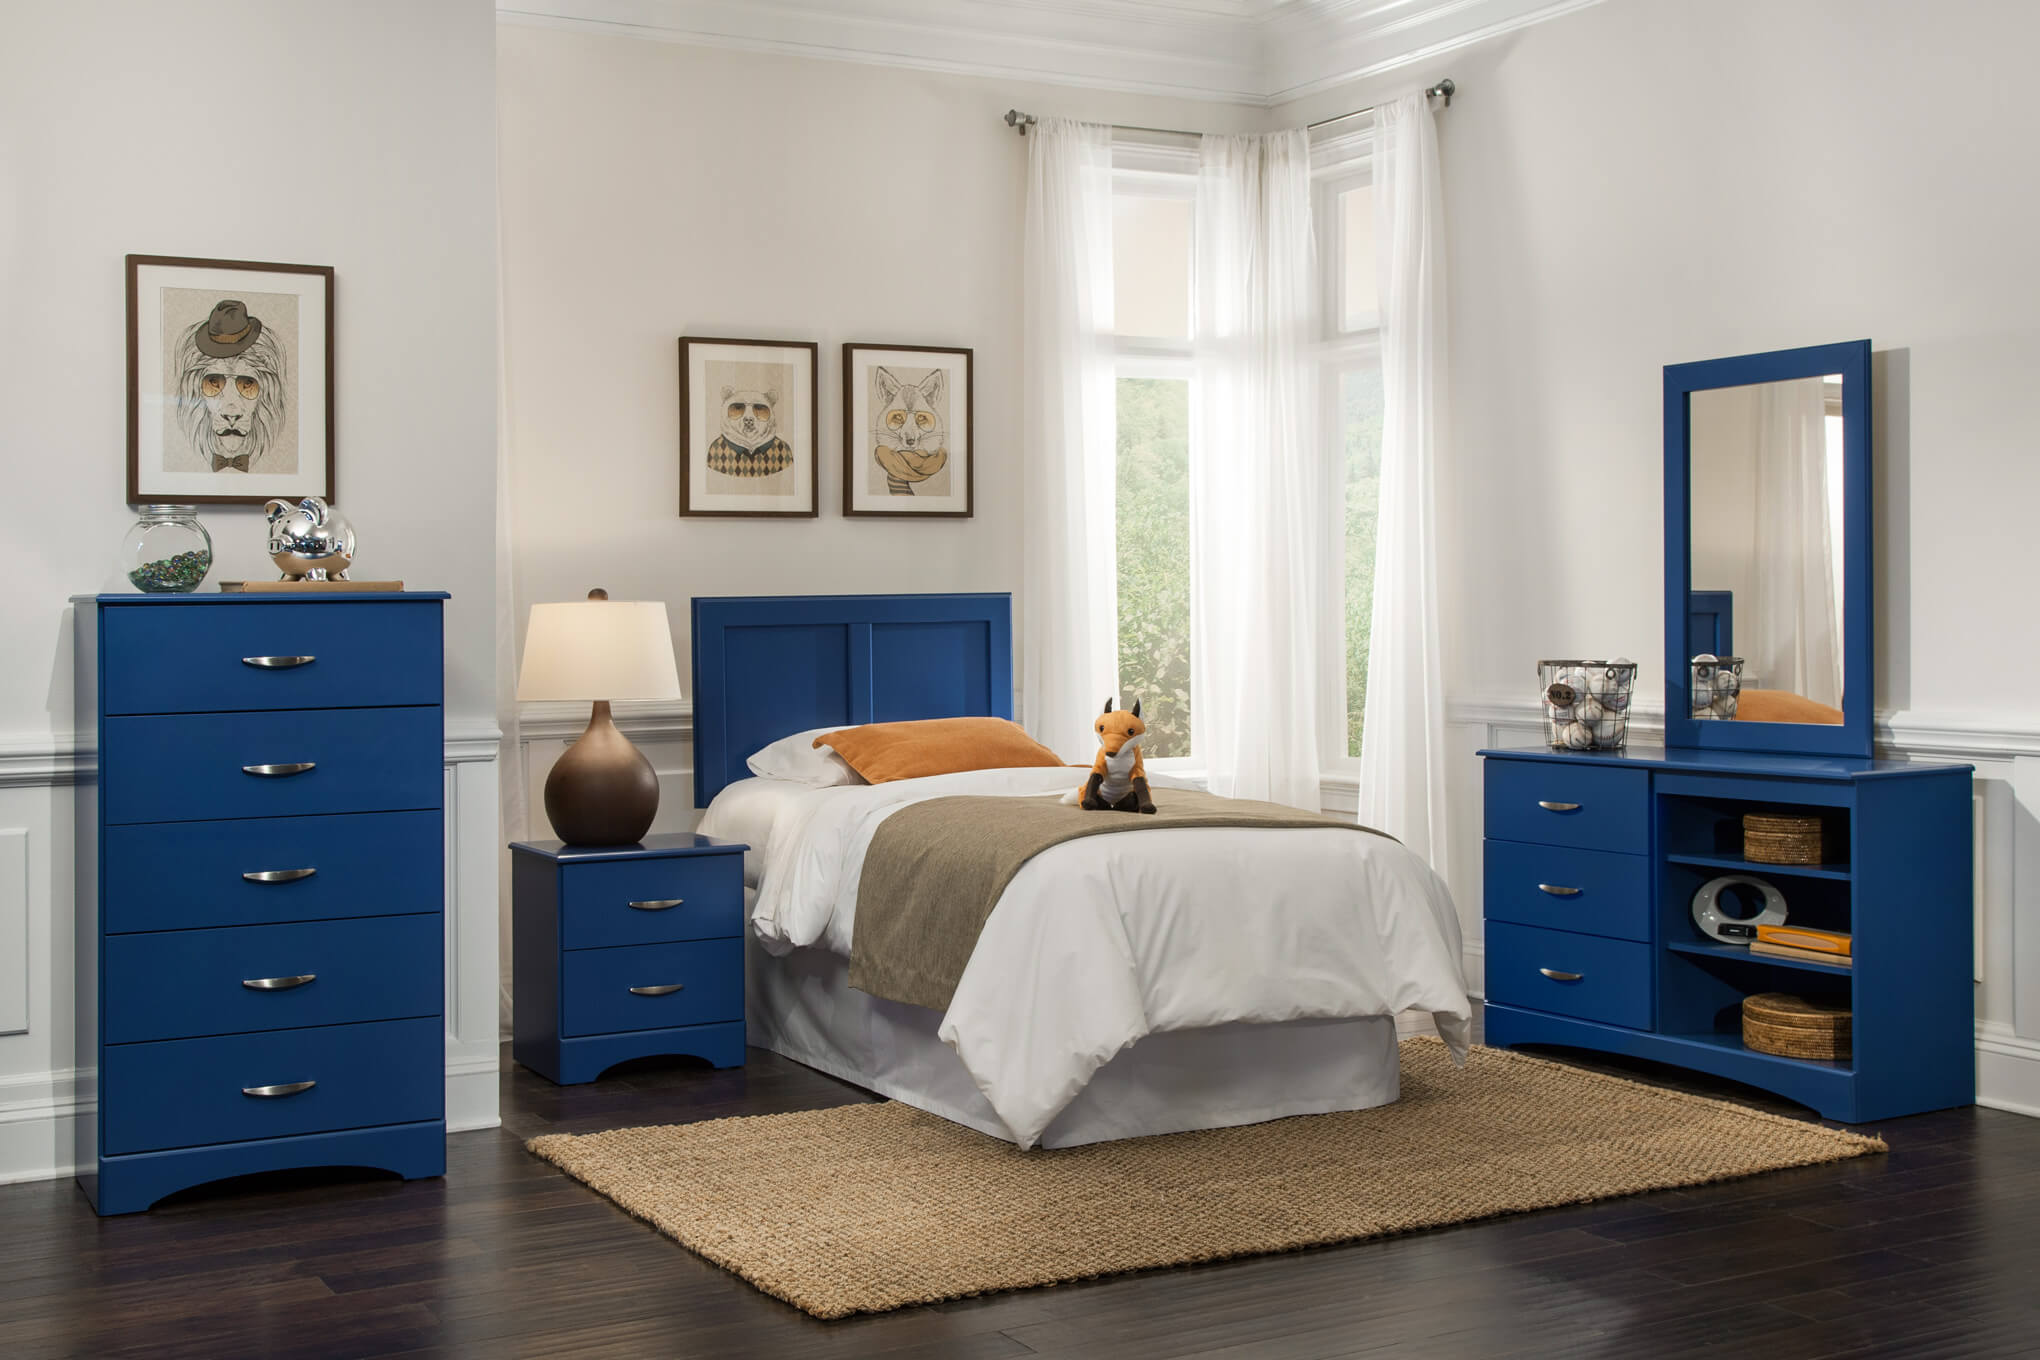 179 Kith Royal Blue Bedroom Set